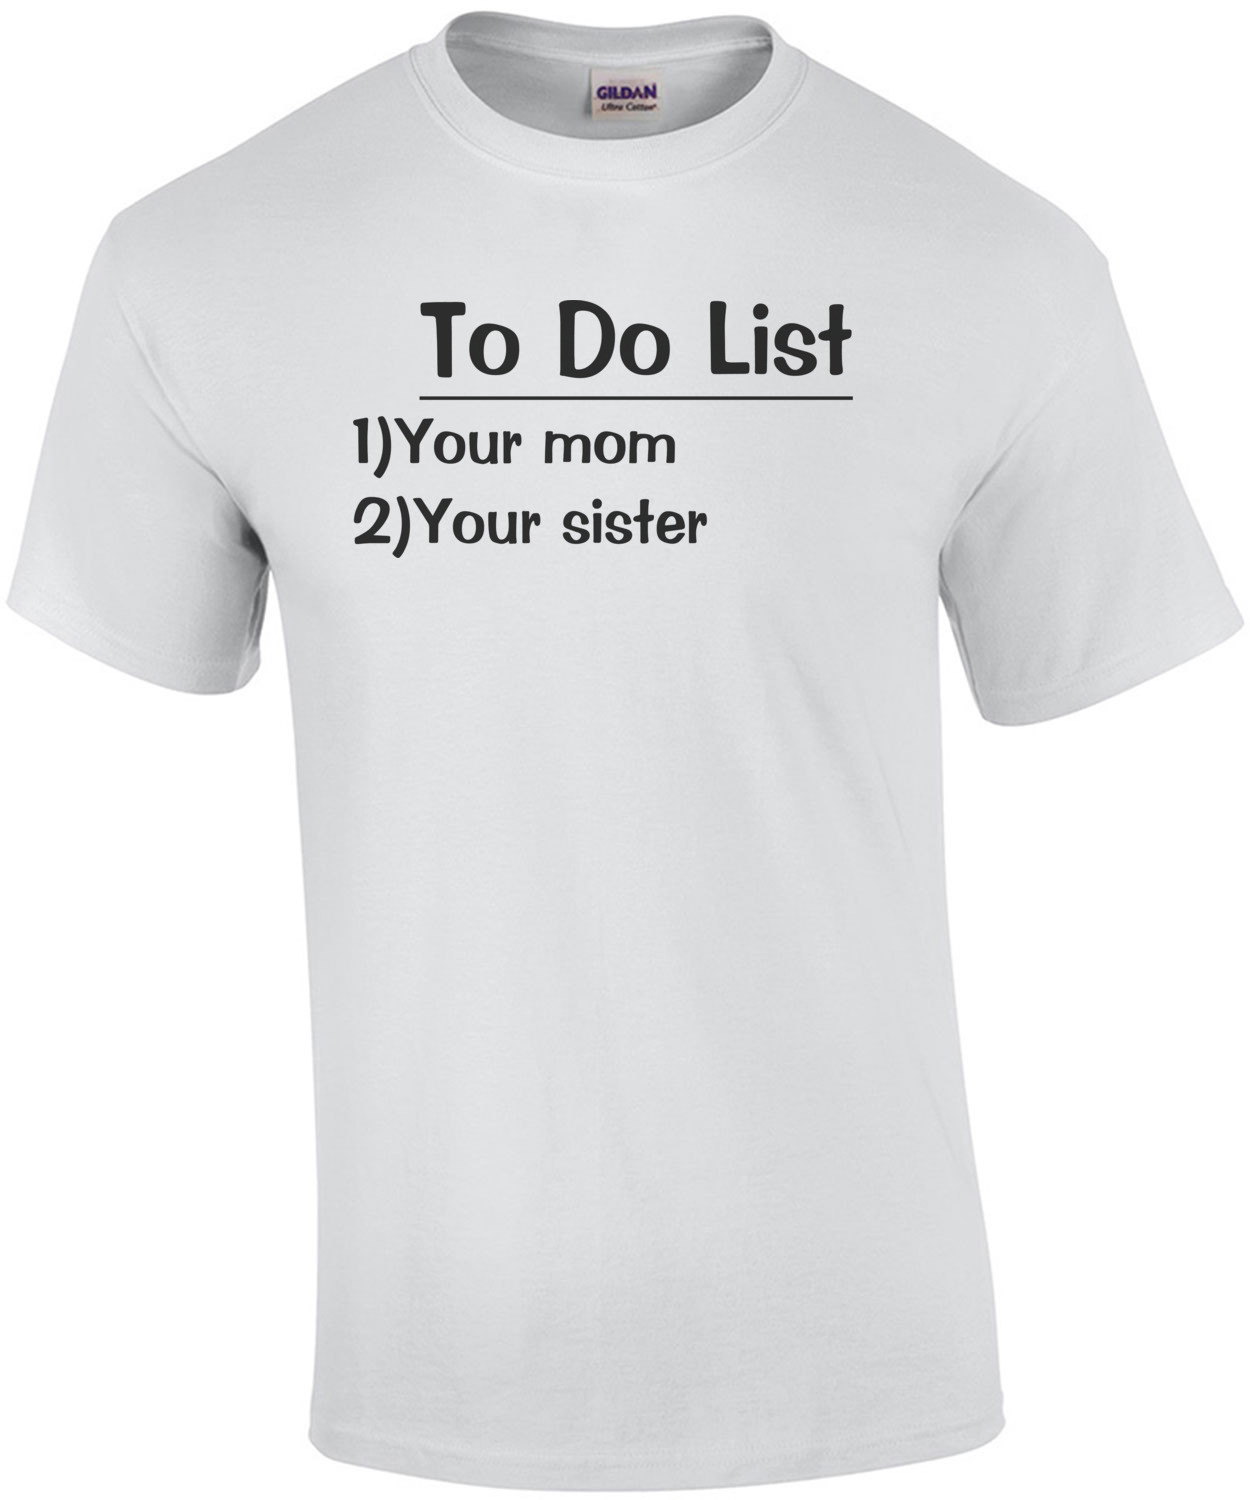 To Do List: Your Mom, Your Sister